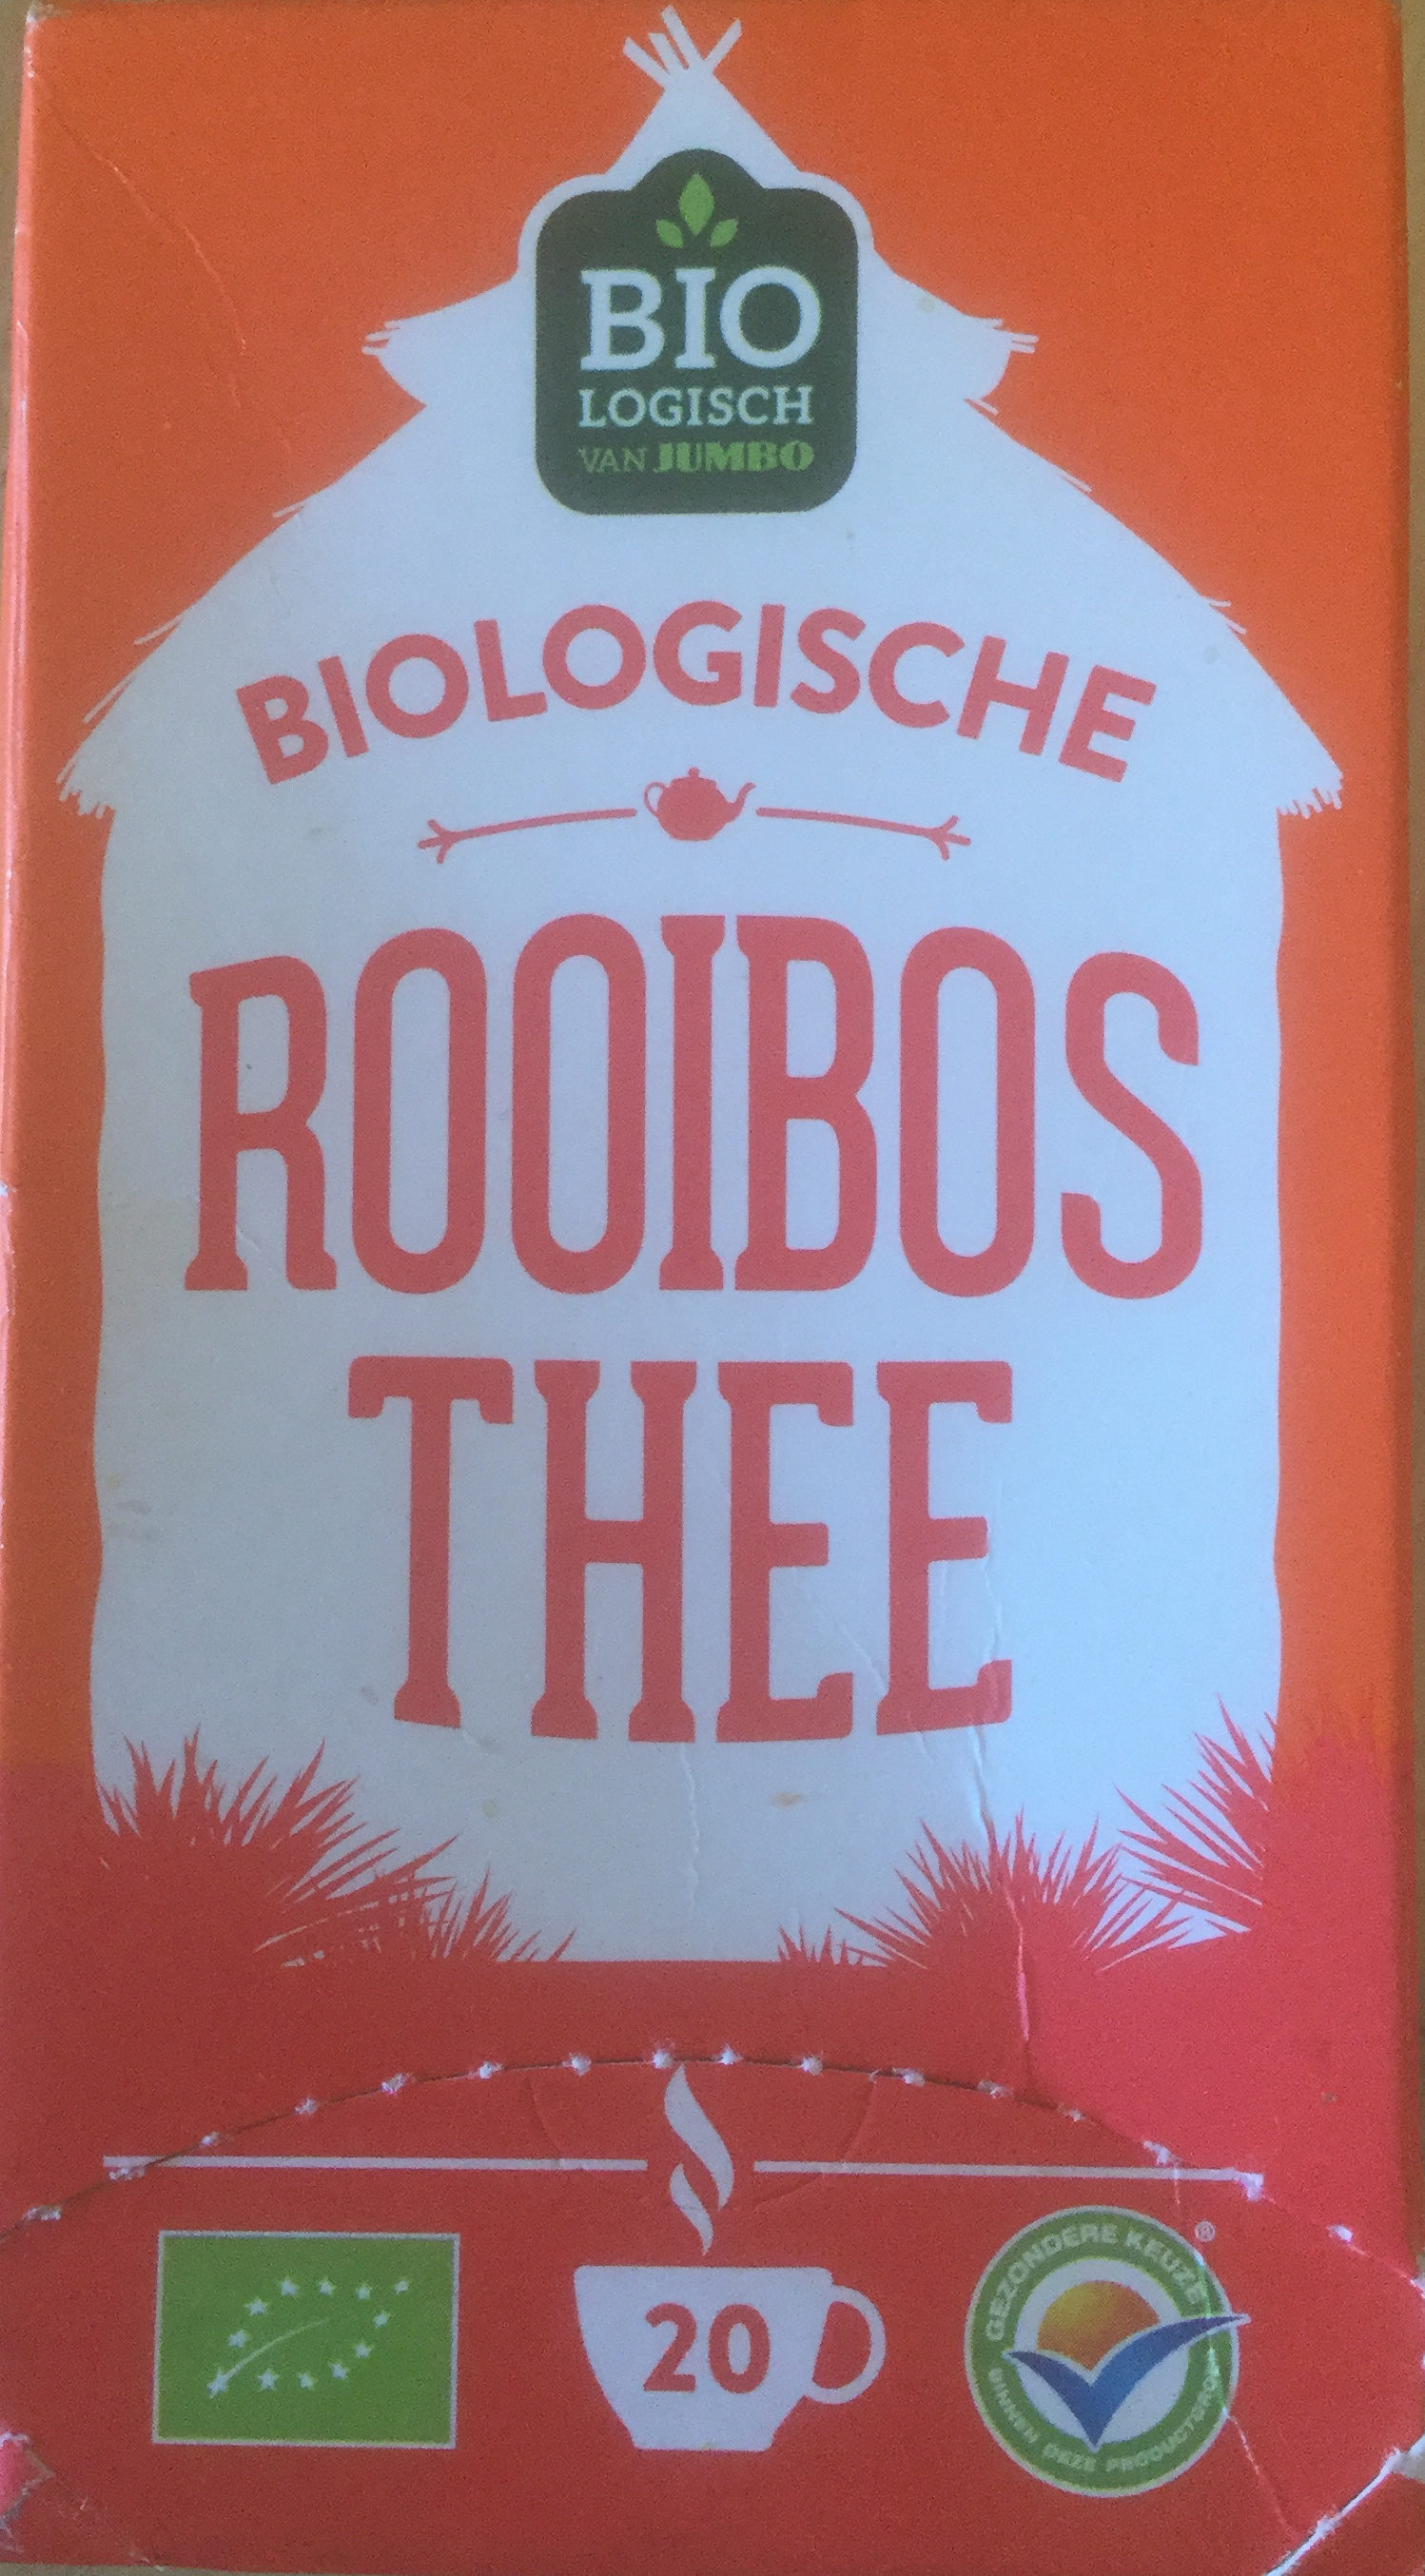 Biologische rooibos thee - Product